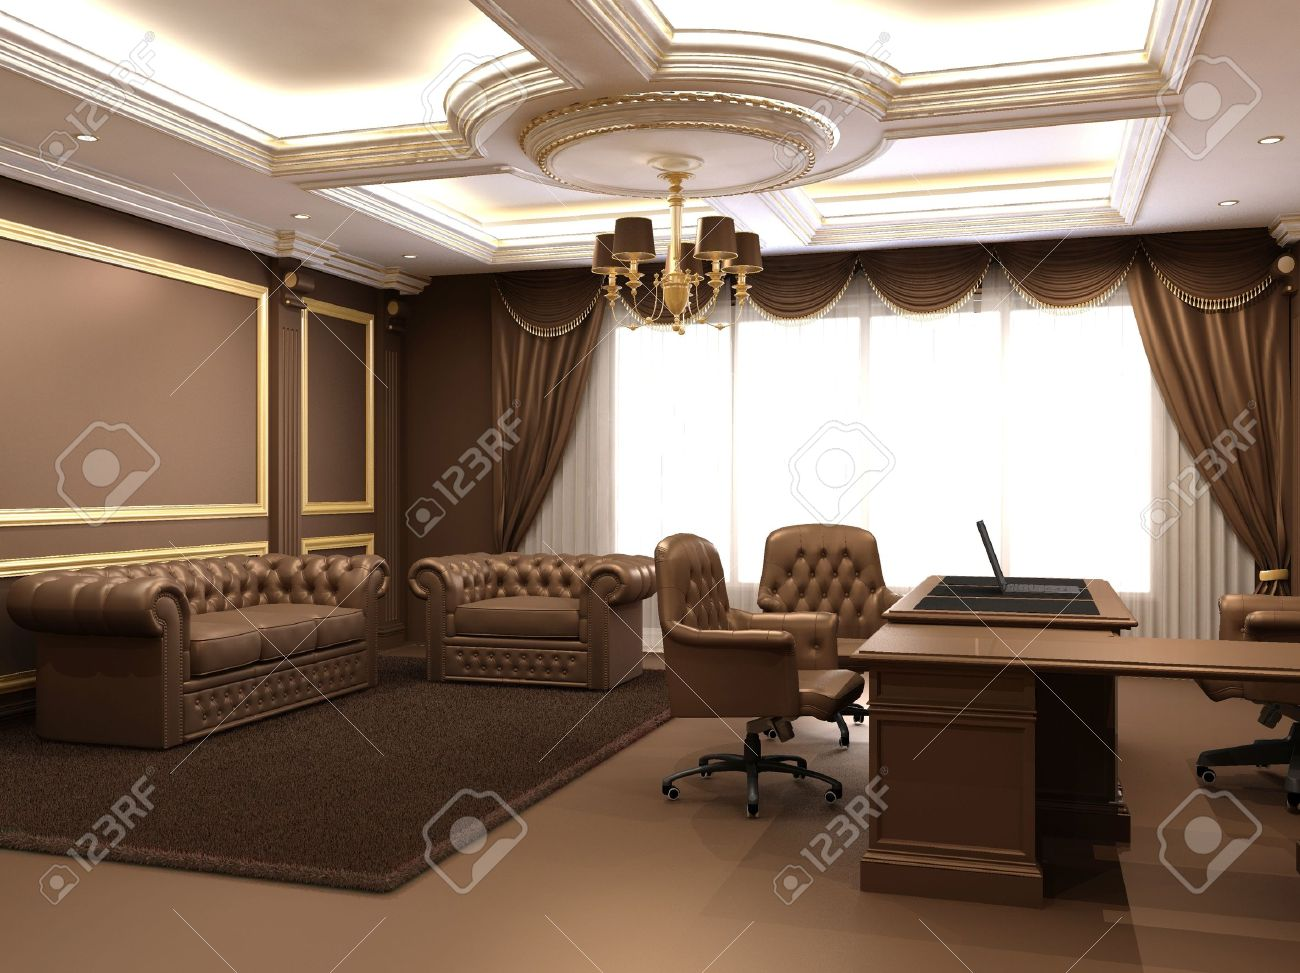 Modern office in wooden royal interior space Stock Photo - 10523446